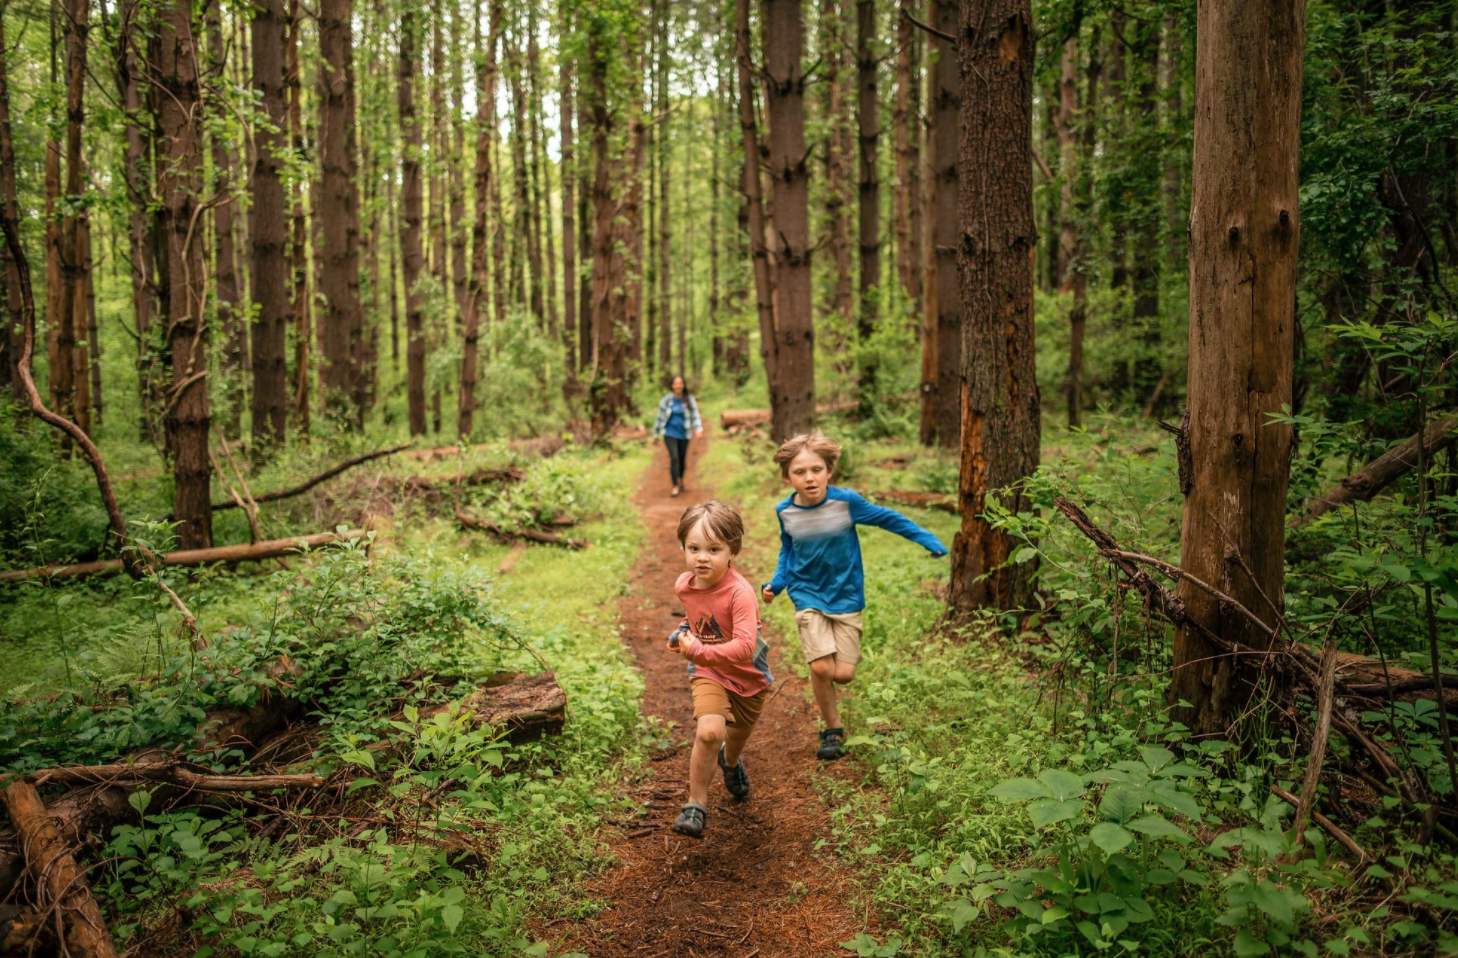 children playing on a trail